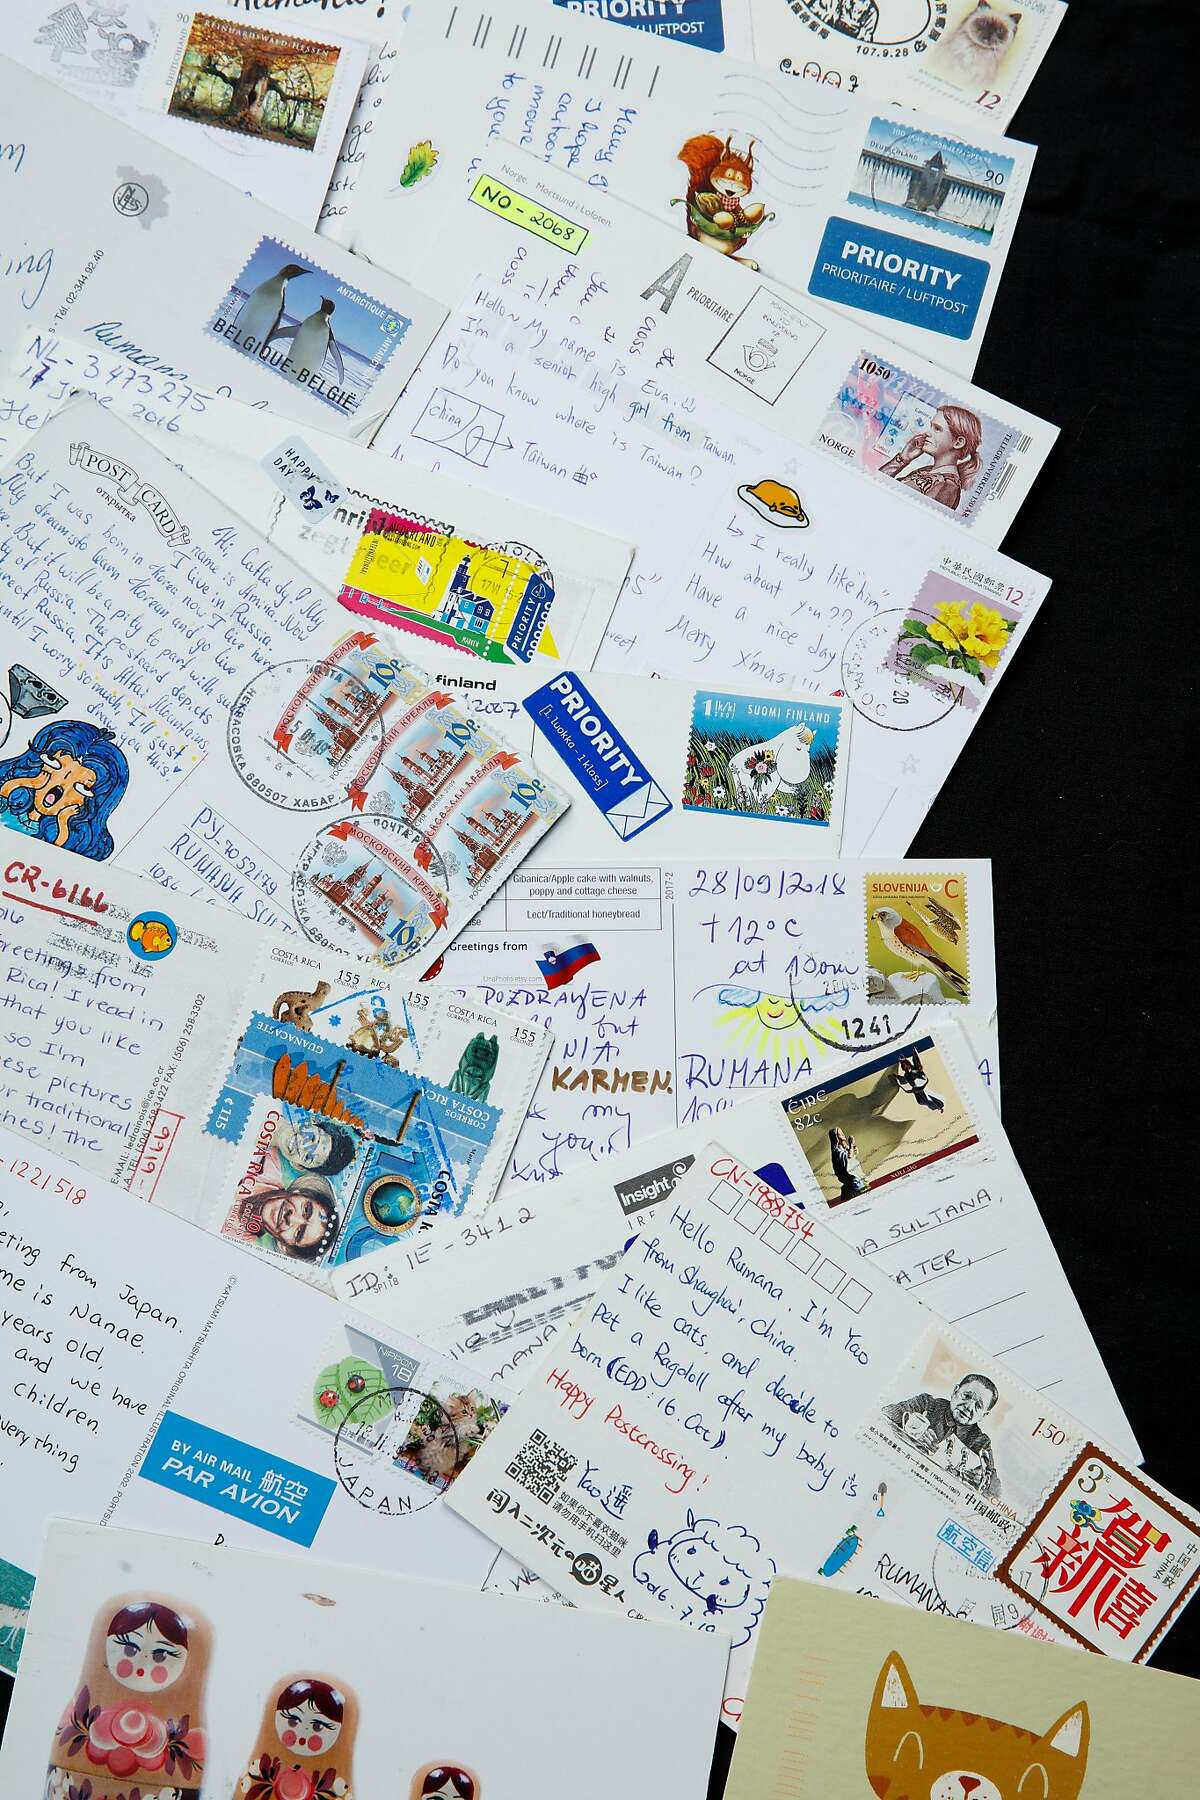 Part of Rumana Sultana's collection of over 3,000 postcards from around the world.